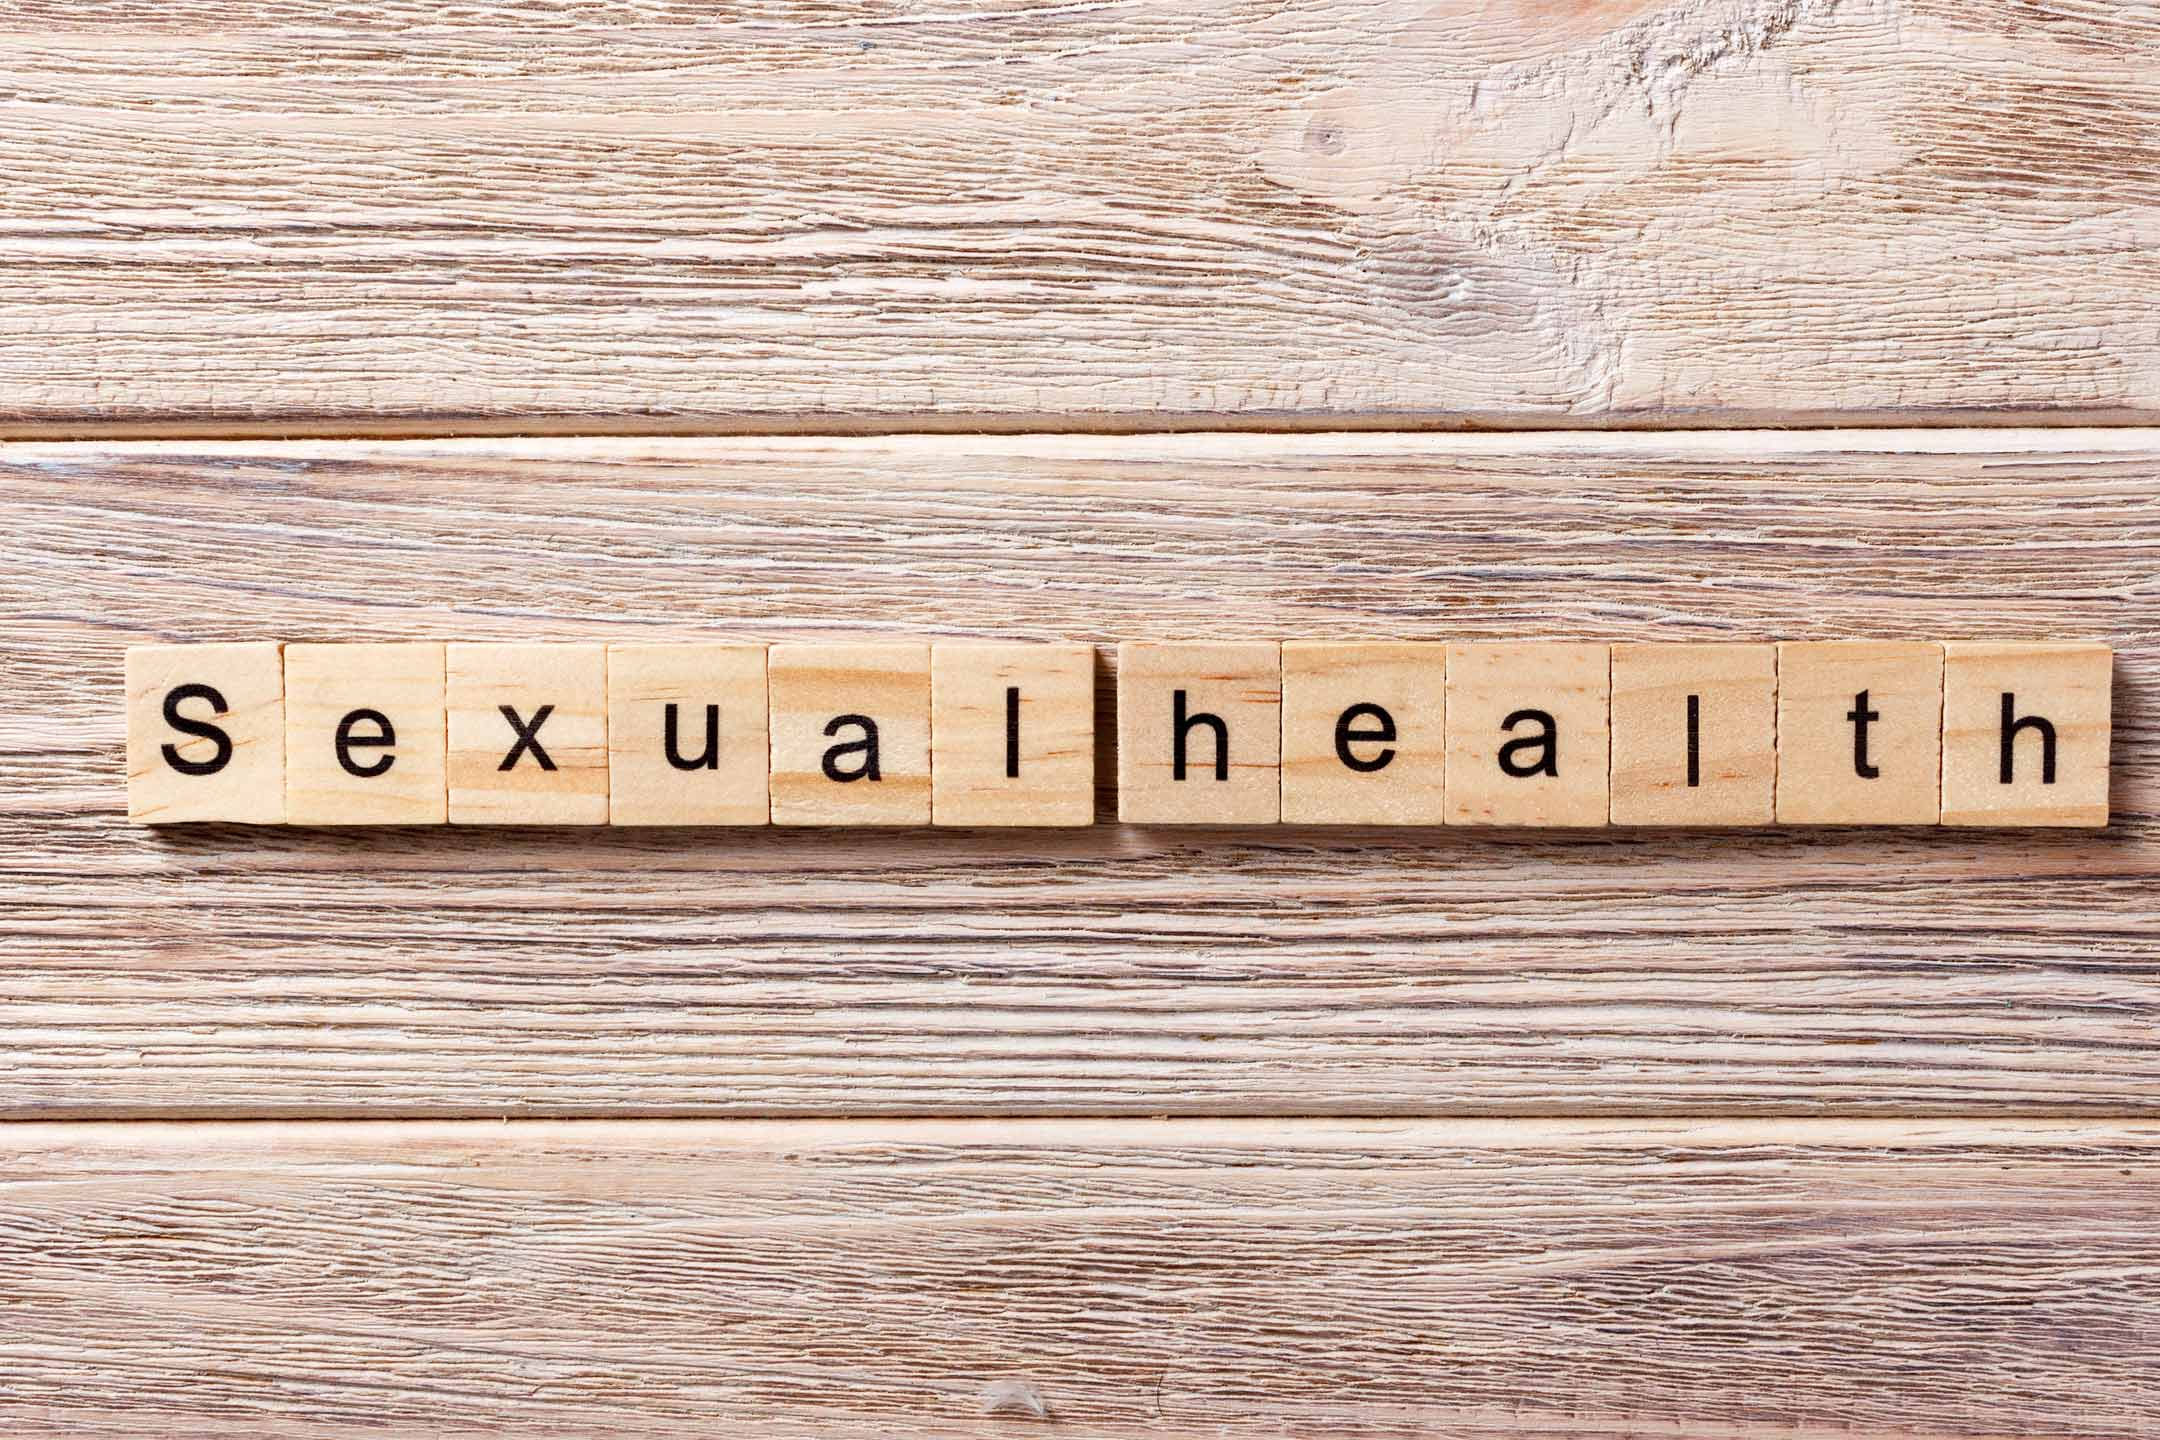 sexual-health-letters-sign2160